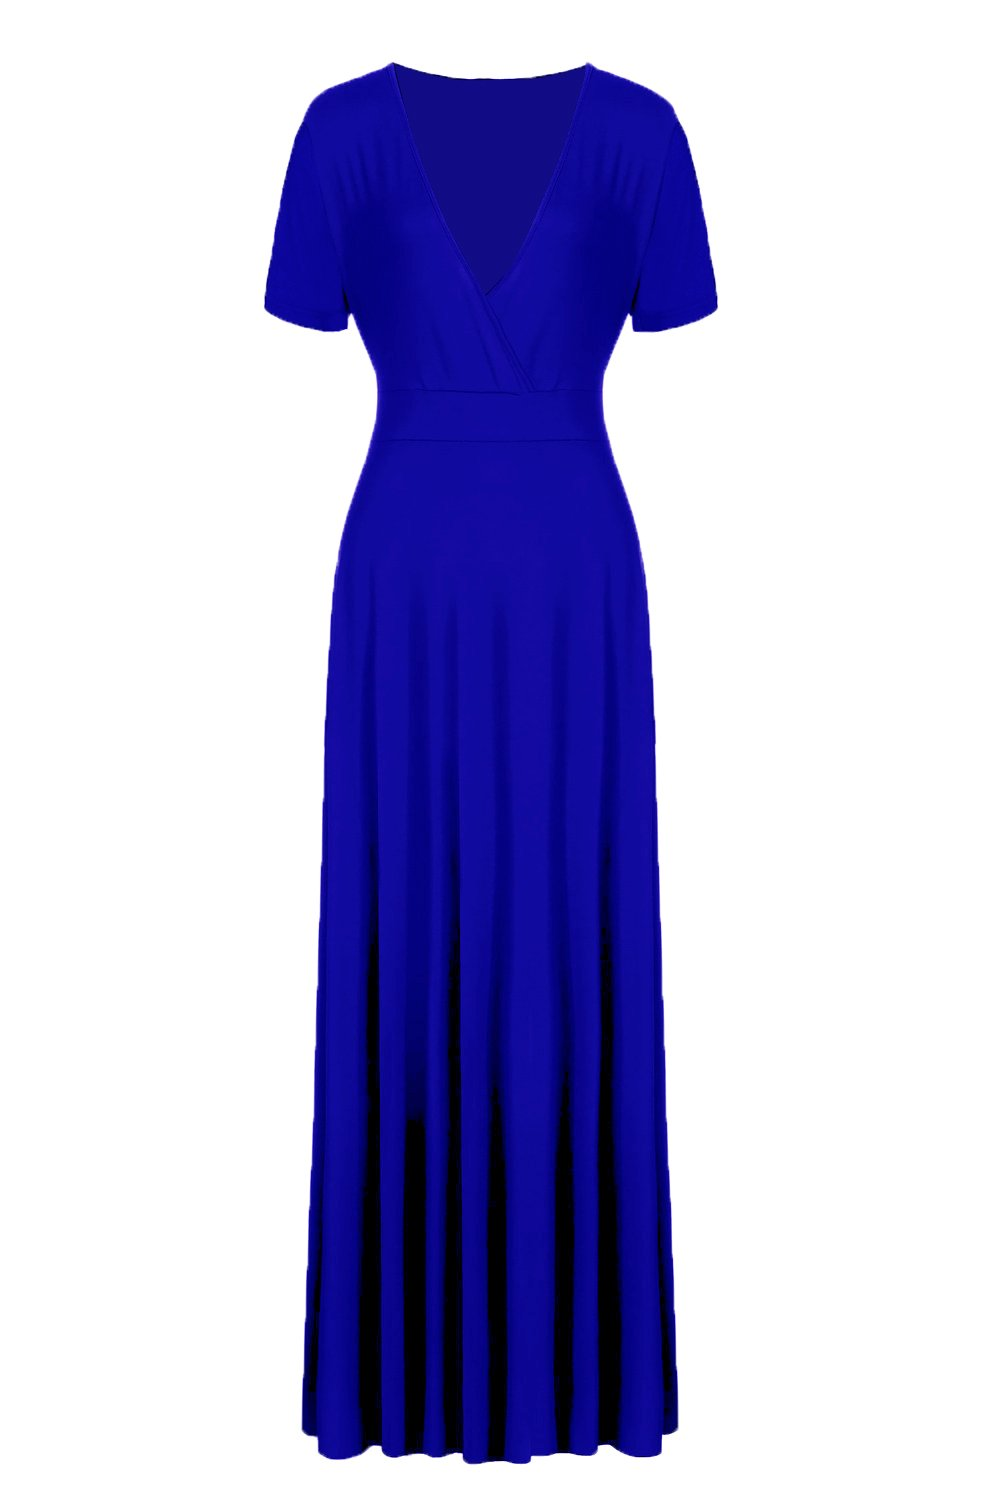 POSESHE Women\'s Solid V-Neck Short Sleeve Plus Size Evening Party Maxi  Dress (3 Plus, Short Sleeve Royal Blue)